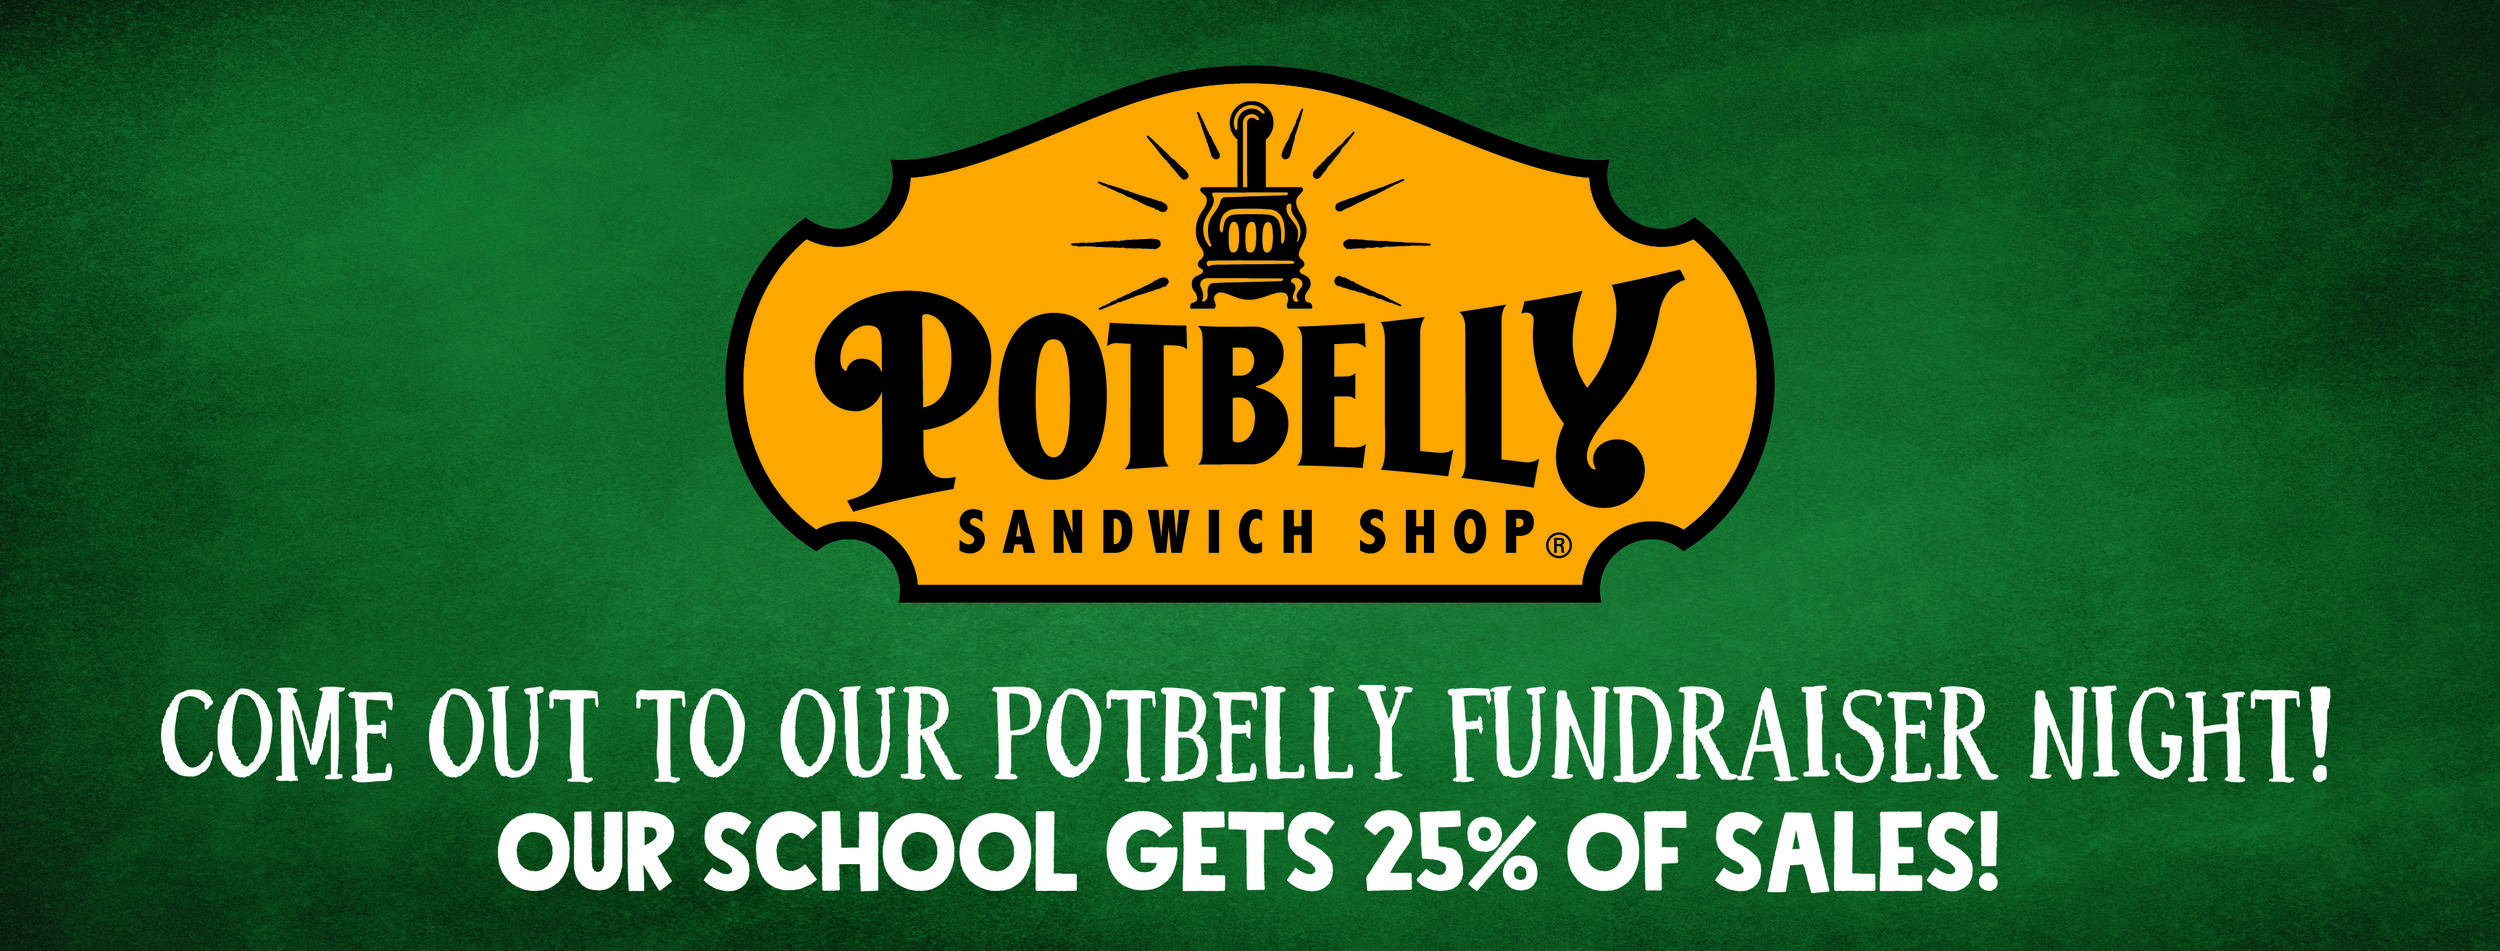 Potbelly__Facebook Cover Photo.jpg